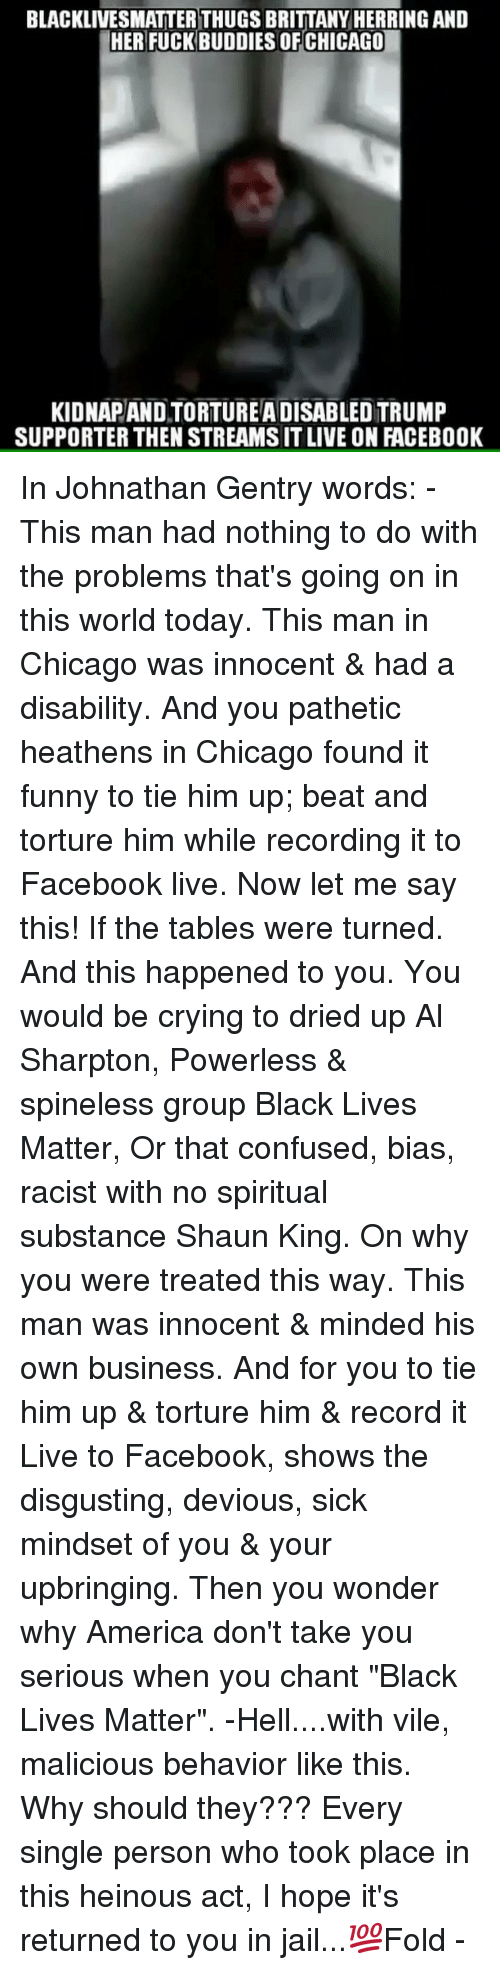 "Black Live Matter: BLACKLIVESMATTERTHUGS BRITTANY HERRING AND  HER FUCK BUDDIES OF CHICAGO  KIDNAPANDTORTUREADISABLED TRUMP  SUPPORTER THEN STREAMSITLIVE ON FACEBOOK In Johnathan Gentry words: - This man had nothing to do with the problems that's going on in this world today. This man in Chicago was innocent & had a disability. And you pathetic heathens in Chicago found it funny to tie him up; beat and torture him while recording it to Facebook live. Now let me say this! If the tables were turned. And this happened to you. You would be crying to dried up Al Sharpton, Powerless & spineless group Black Lives Matter, Or that confused, bias, racist with no spiritual substance Shaun King. On why you were treated this way. This man was innocent & minded his own business. And for you to tie him up & torture him & record it Live to Facebook, shows the disgusting, devious, sick mindset of you & your upbringing. Then you wonder why America don't take you serious when you chant ""Black Lives Matter"". -Hell....with vile, malicious behavior like this. Why should they??? Every single person who took place in this heinous act, I hope it's returned to you in jail...💯Fold -"